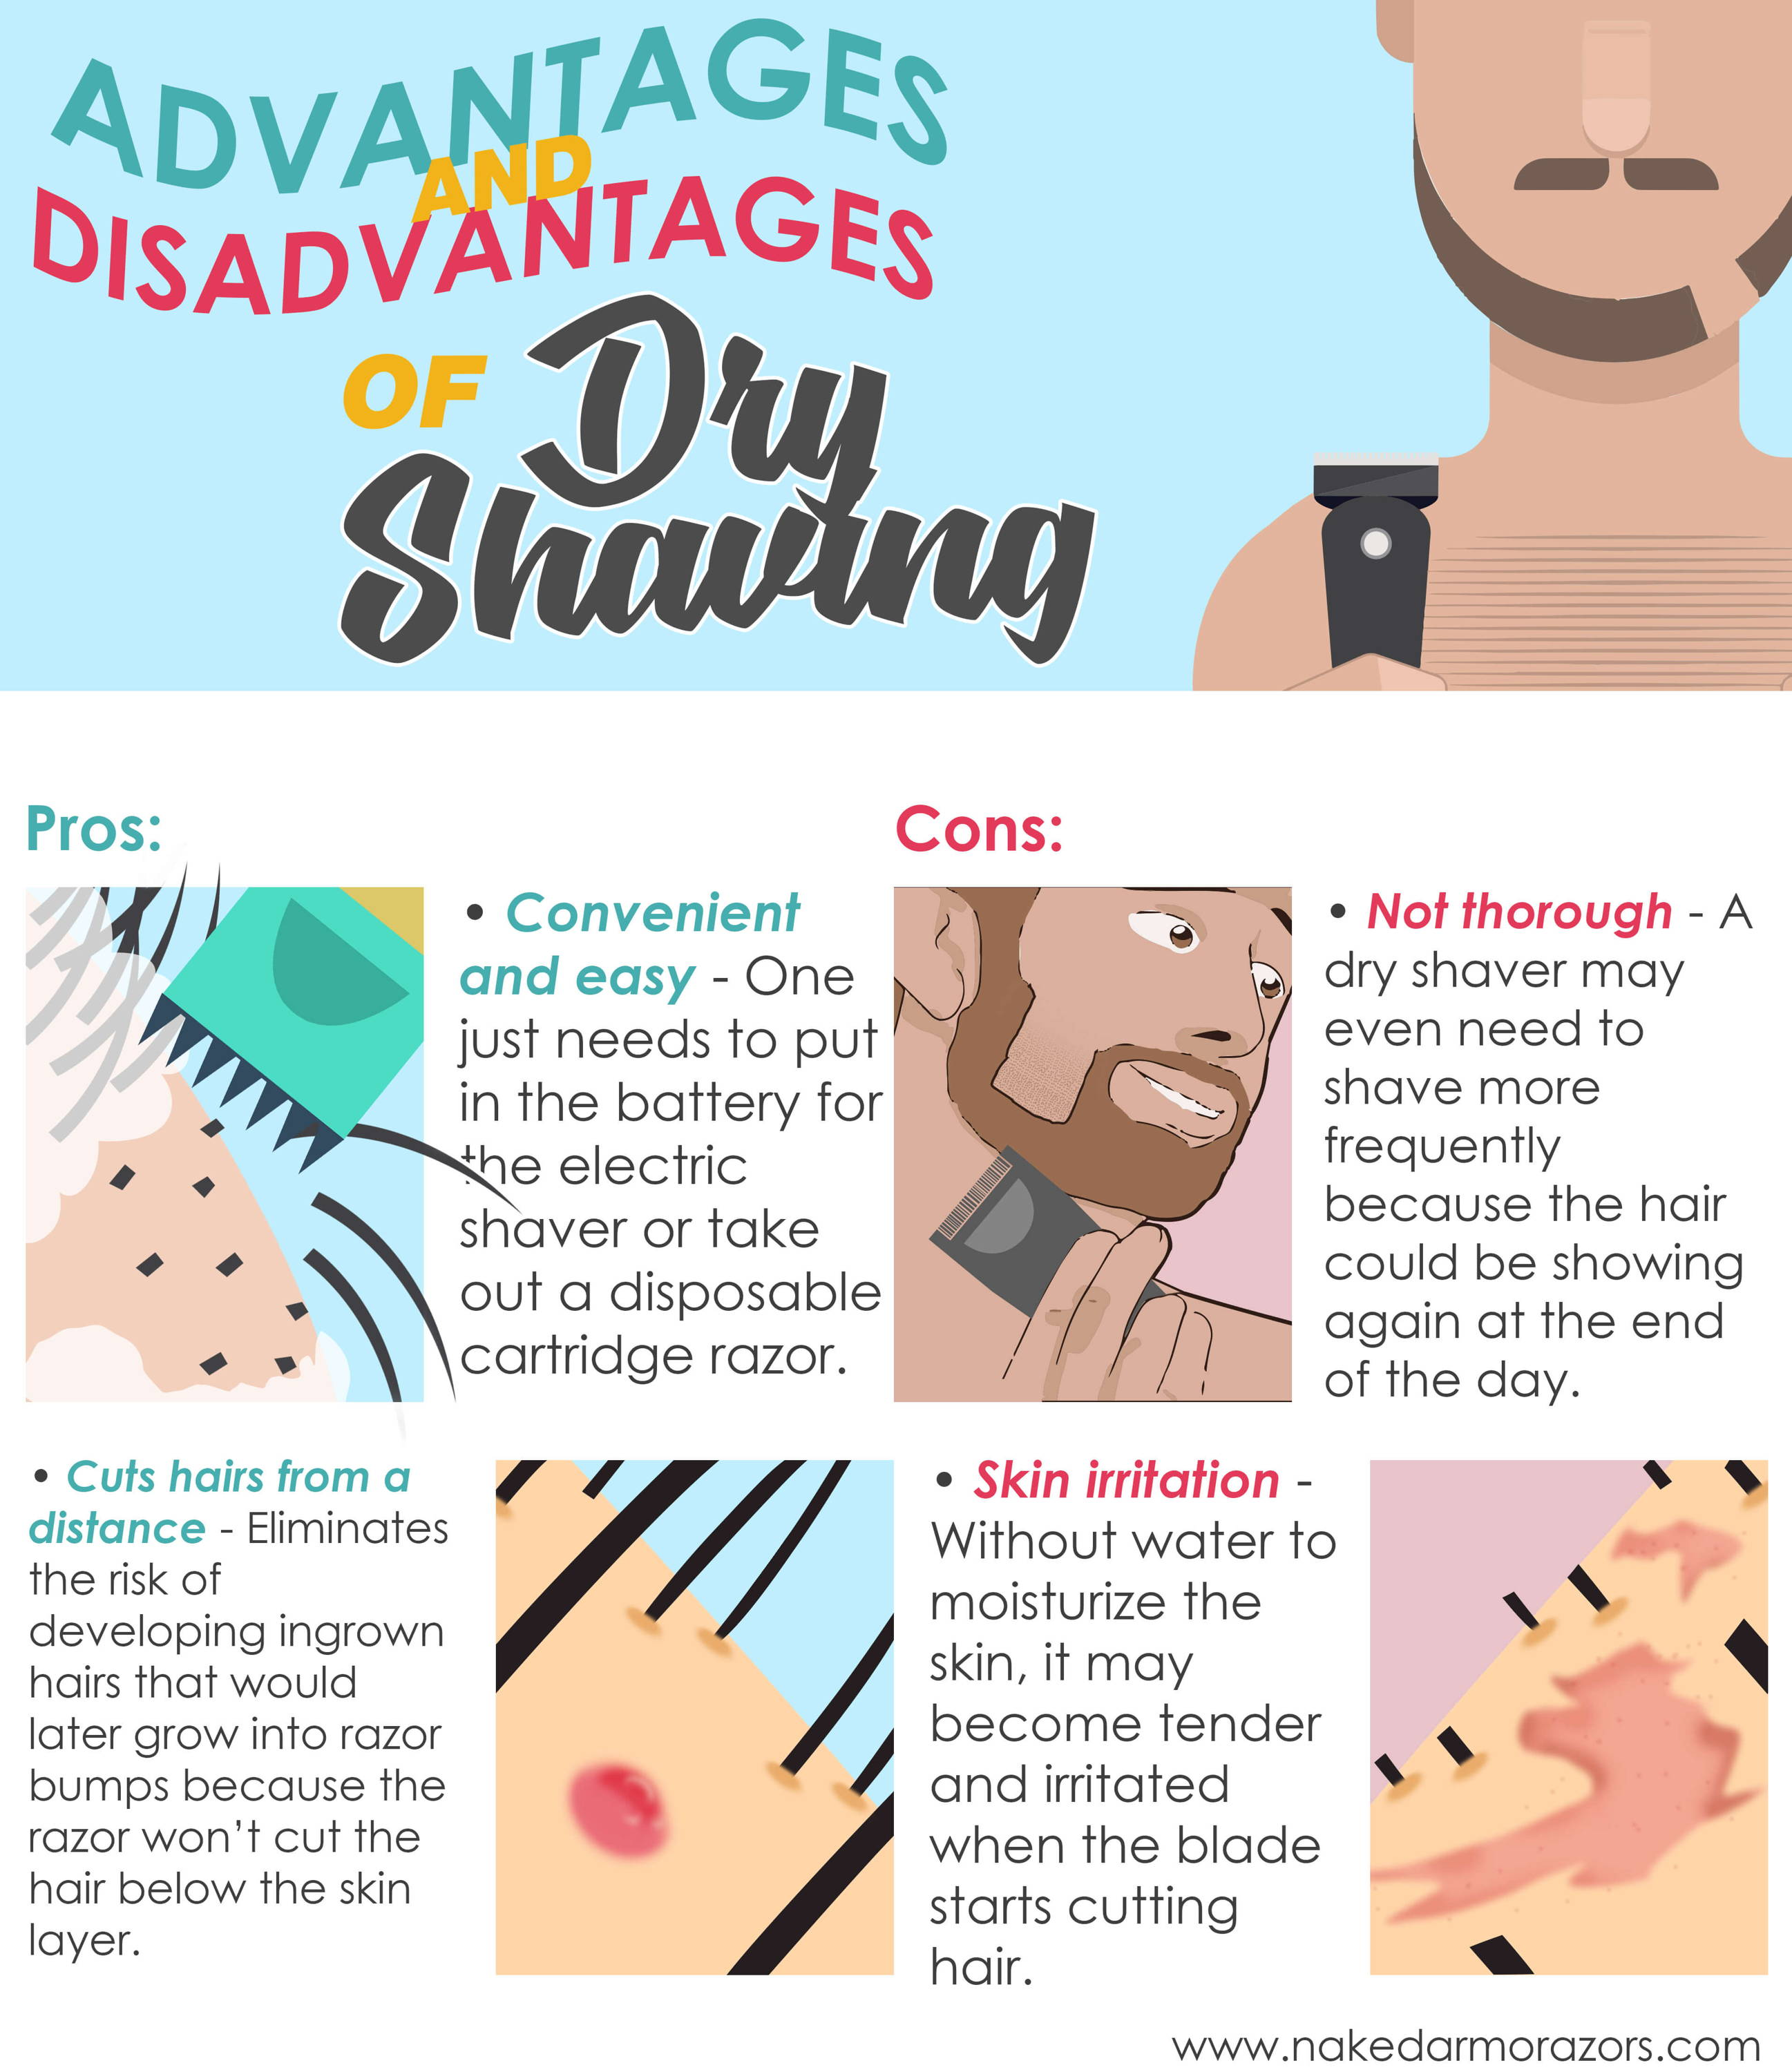 Advantages and Disadvantages of Wet and Dry Shaving - Naked Armor